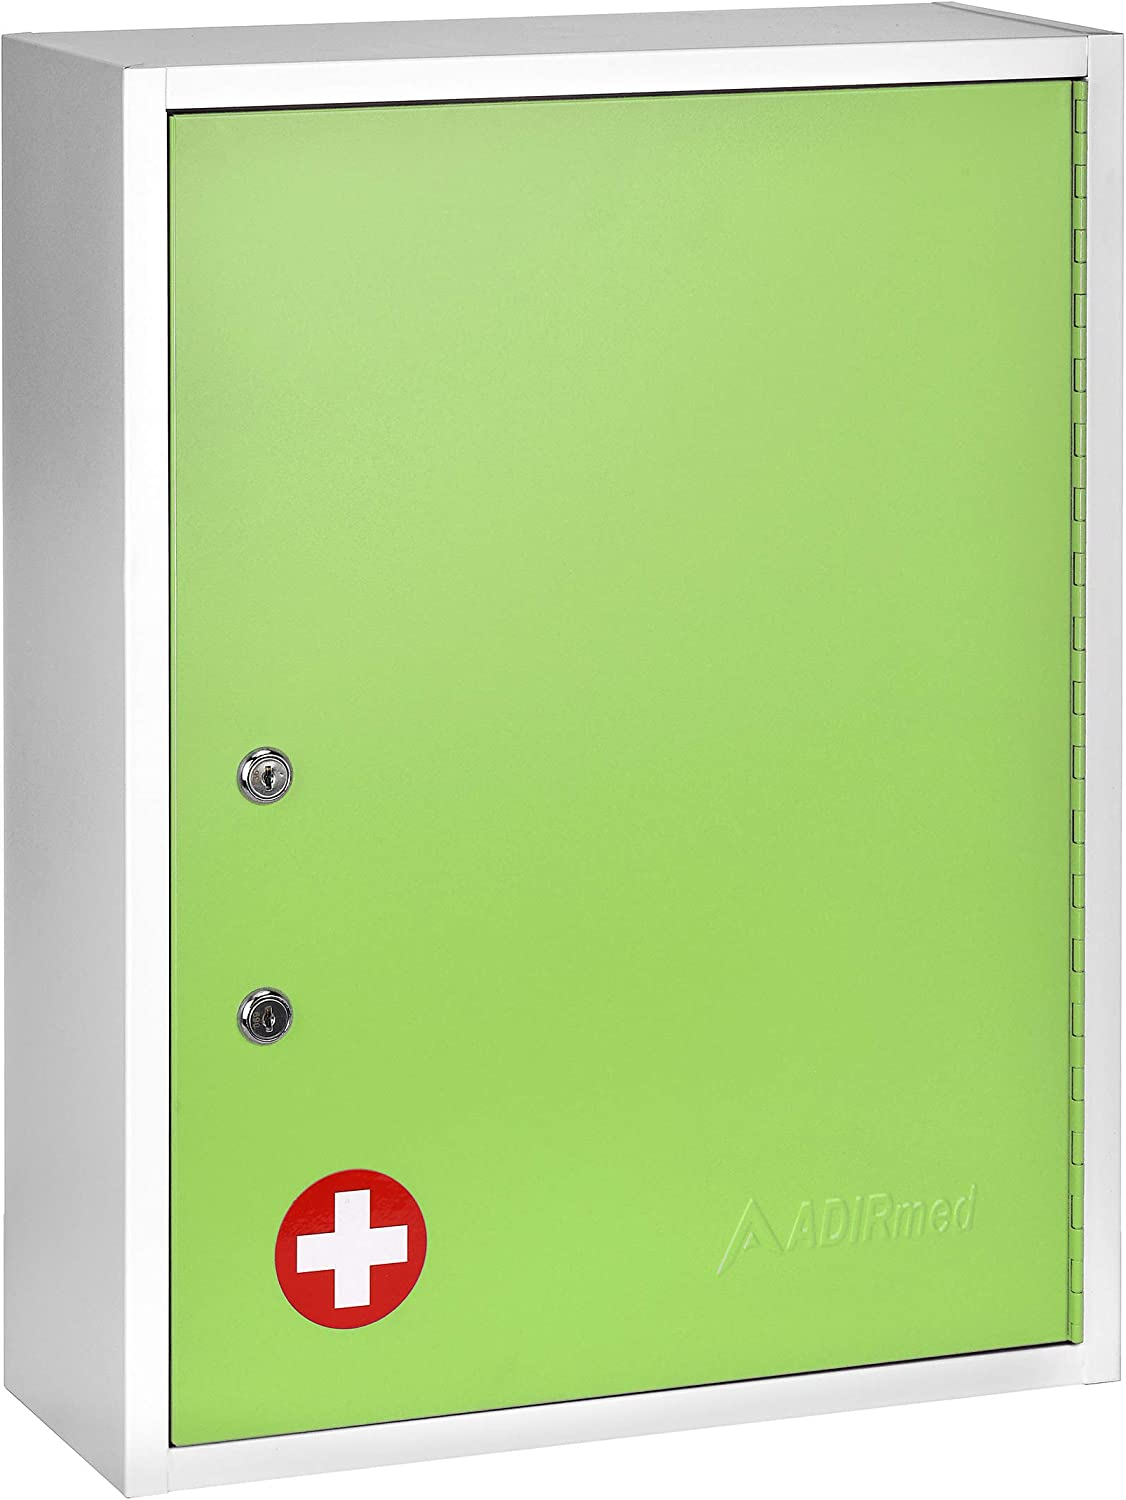 AdirMed Large Dual-Lock Medicine Cabinet – Wall Mounted & Secure Steel Medicine Pills & First Aid Kit & Emeergency Kit Box with Locks for Home Office & School Use (Green)